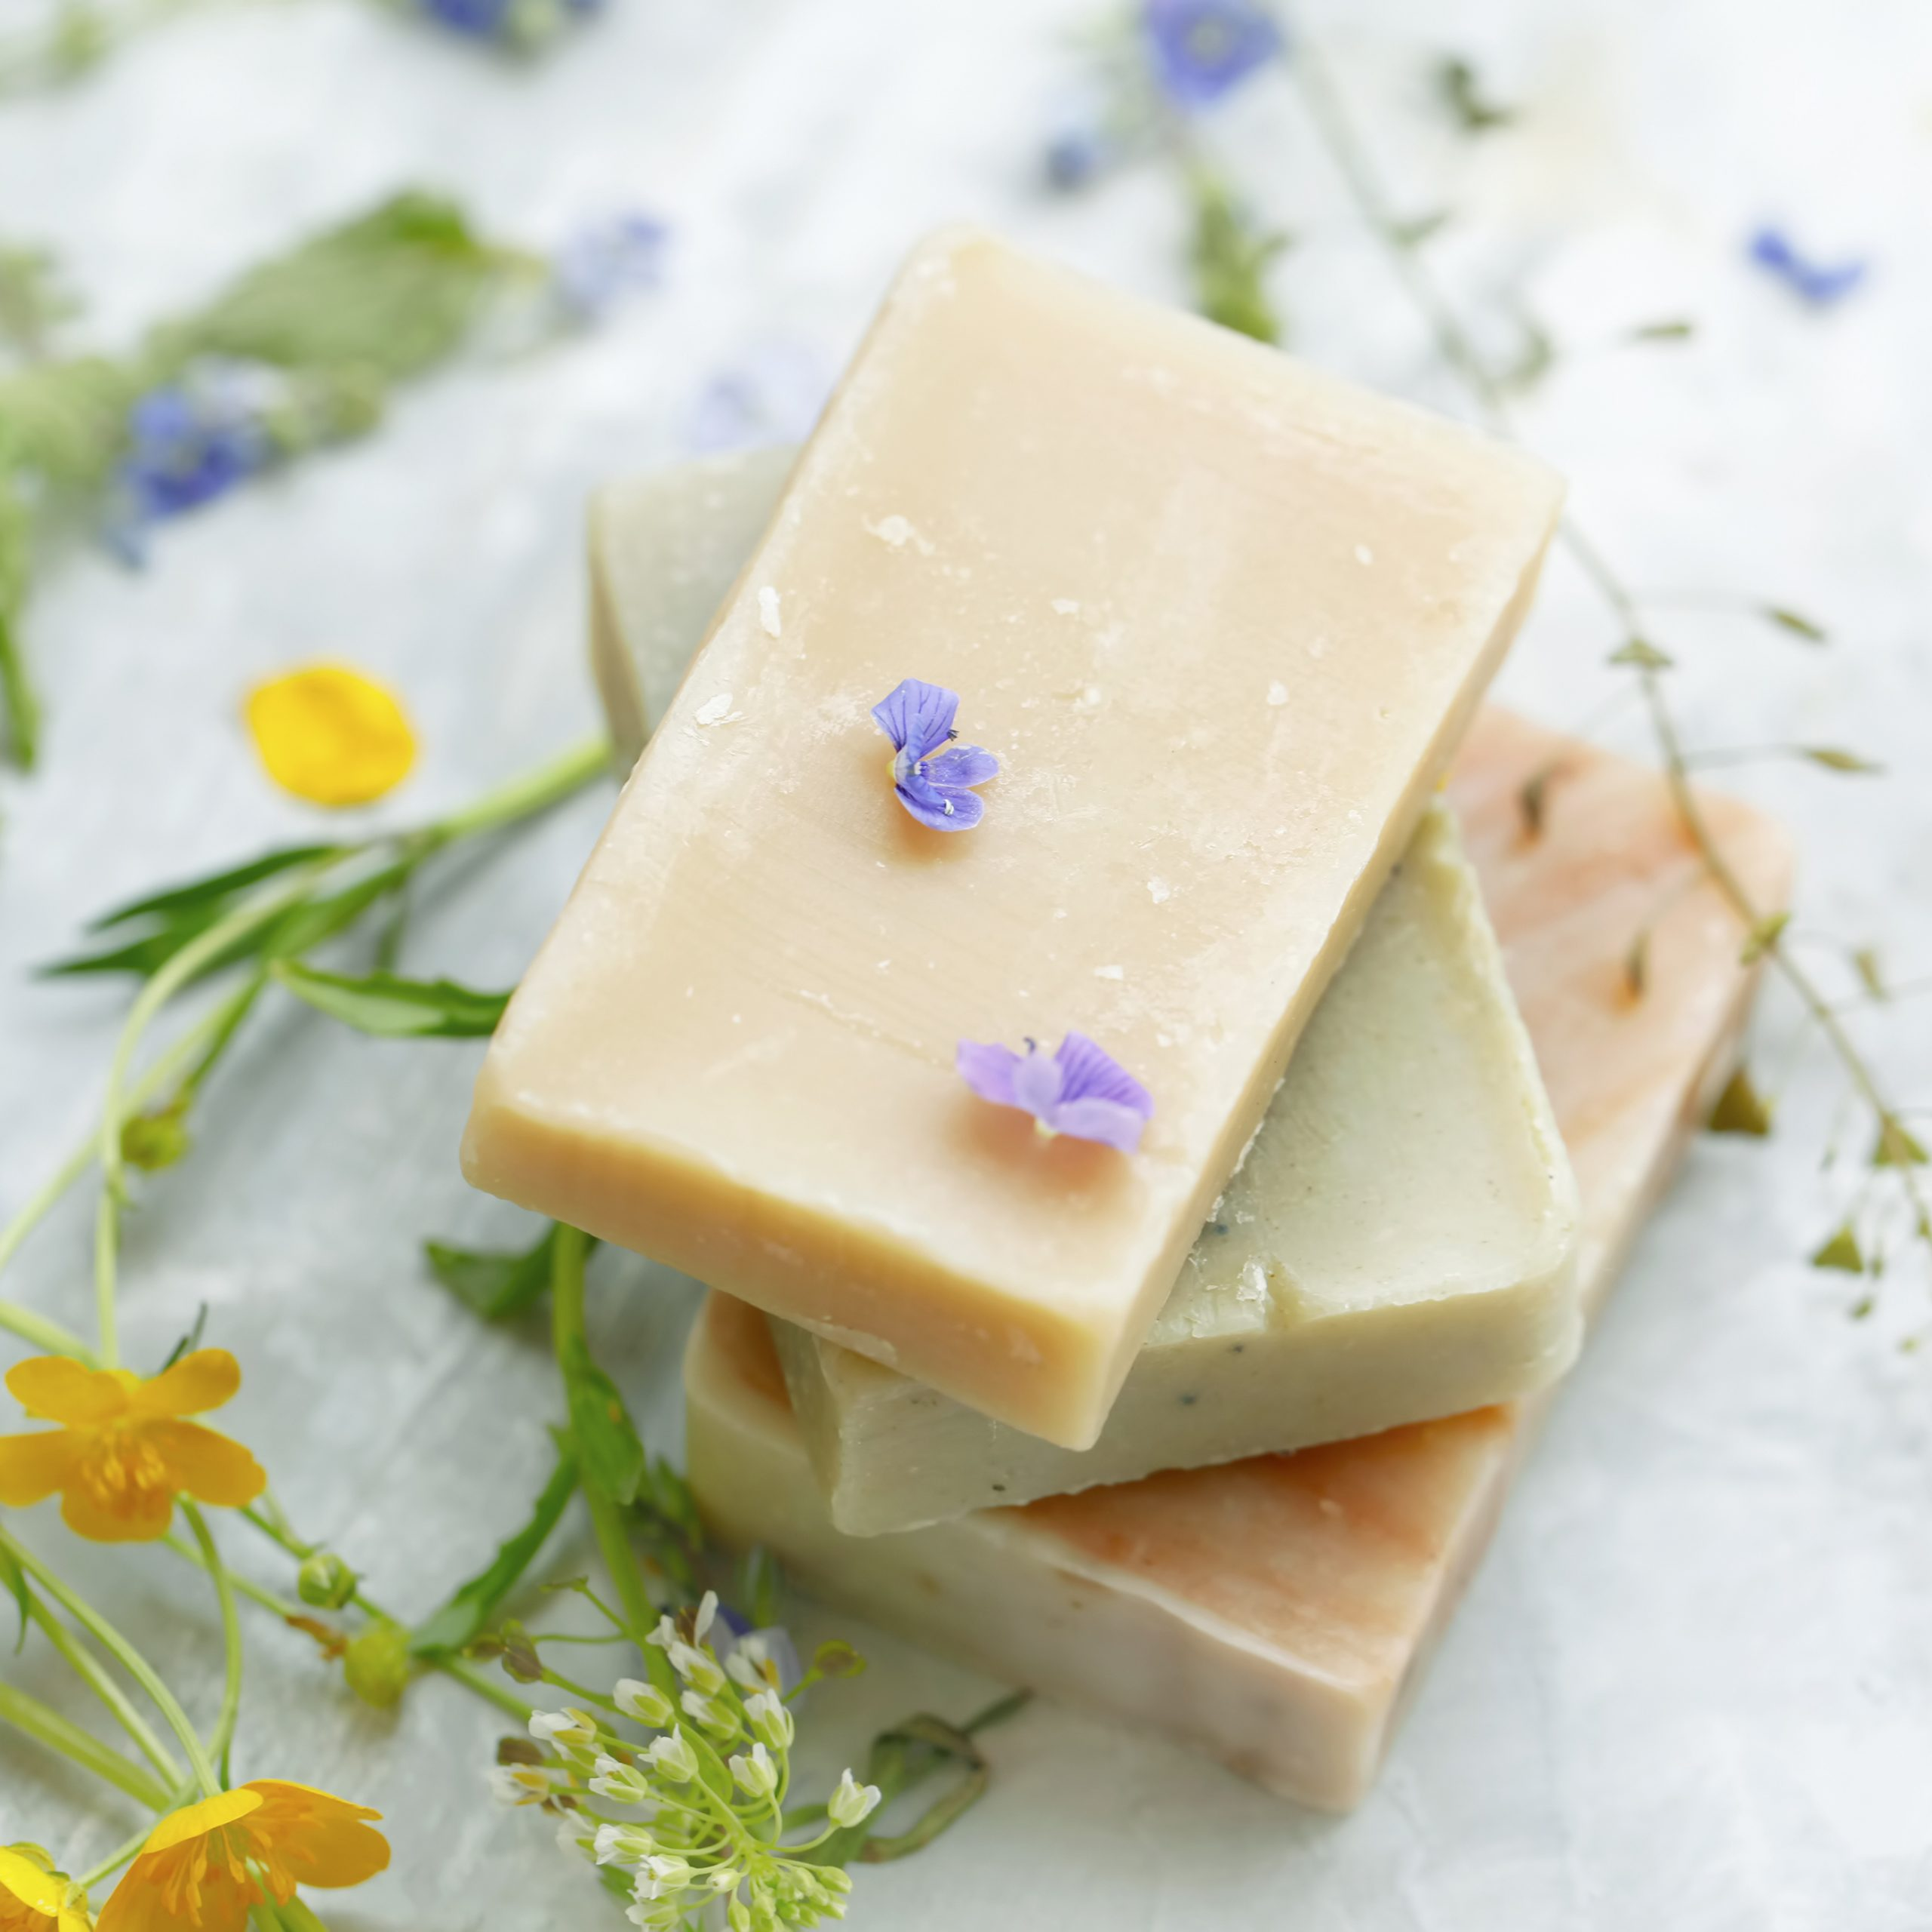 Natural handmade soap bars with organic medicinal plants and flowers.Homemade beauty products with natural essential oils from plants and flowers, top view closeup photo